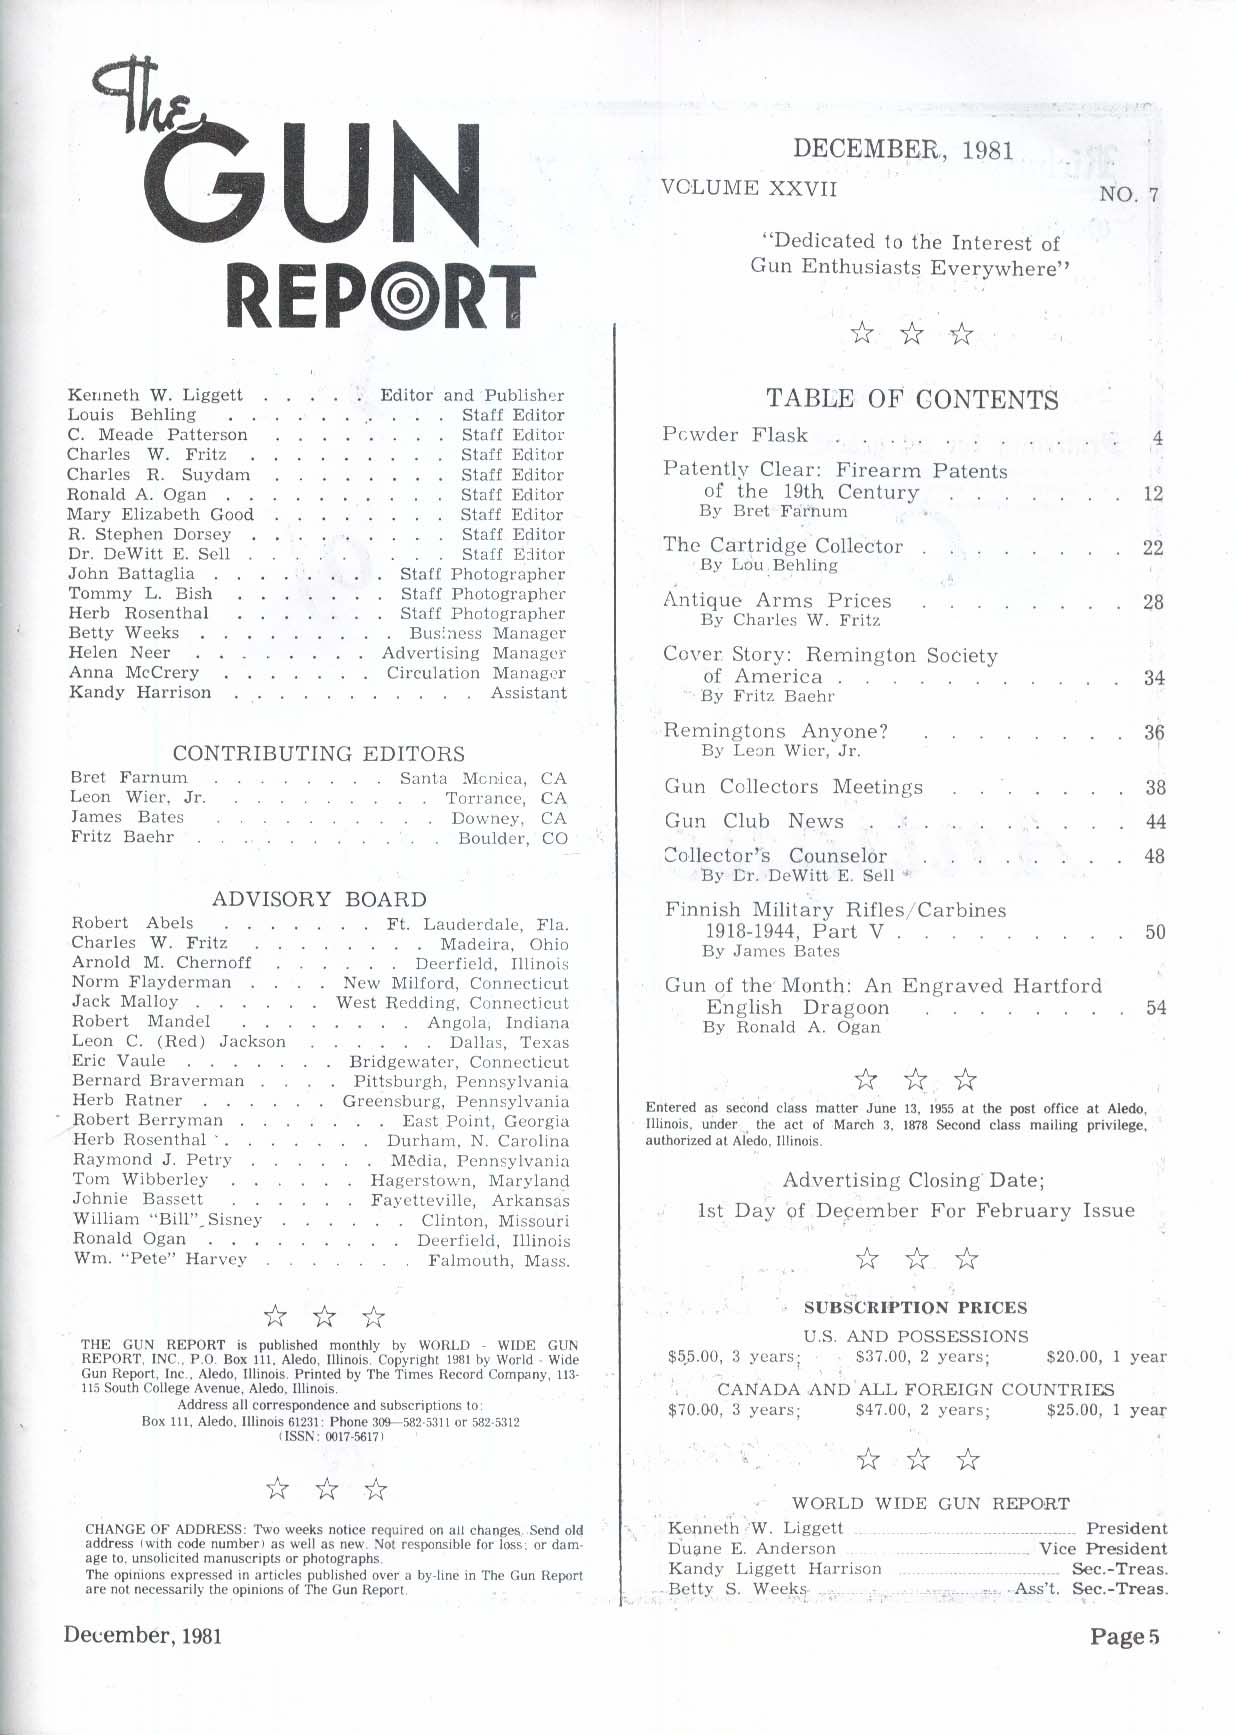 GUN REPORT Remington-Beals Revolver Remington Society Finnish Military 12 1981